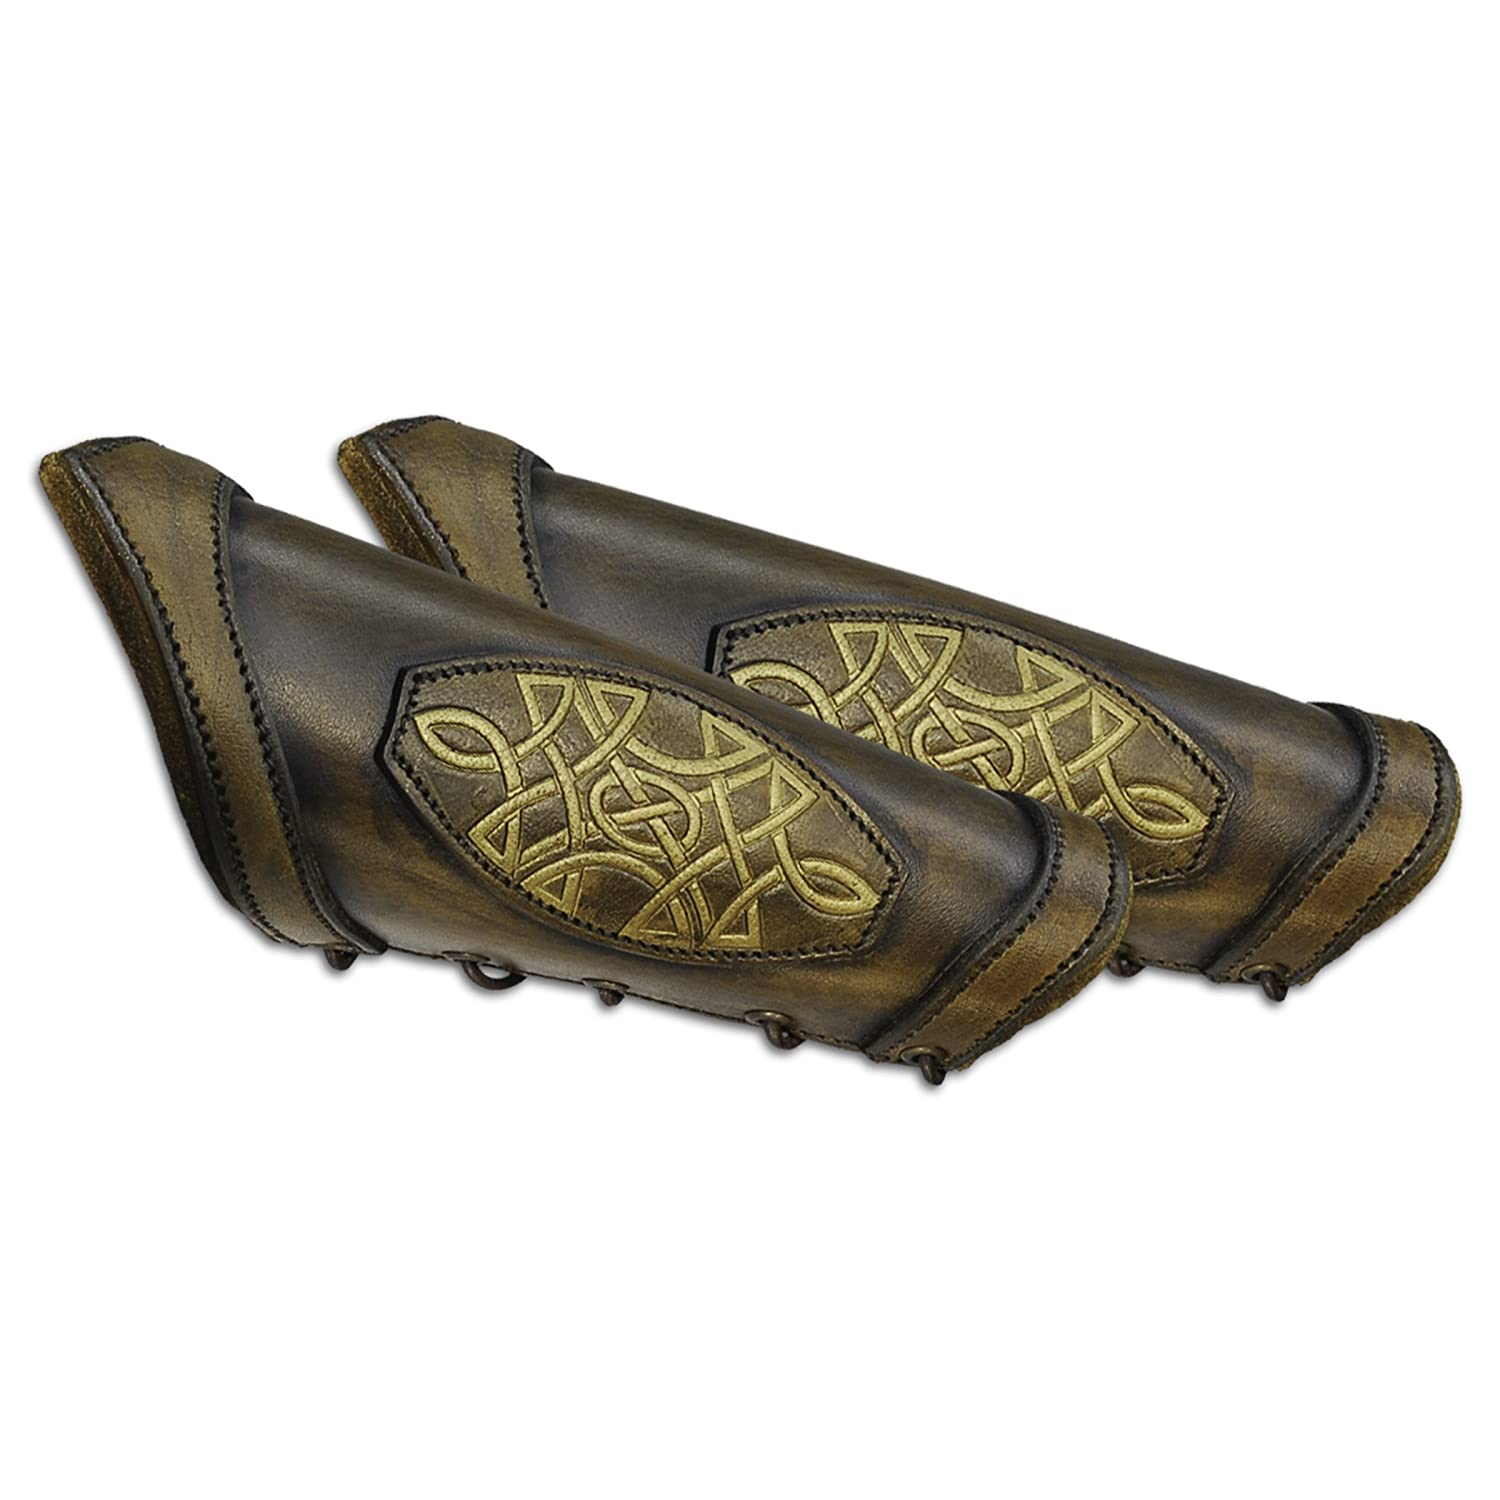 Brown Leather Celtic Design Bracer Arm Guards - DeluxeAdultCostumes.com